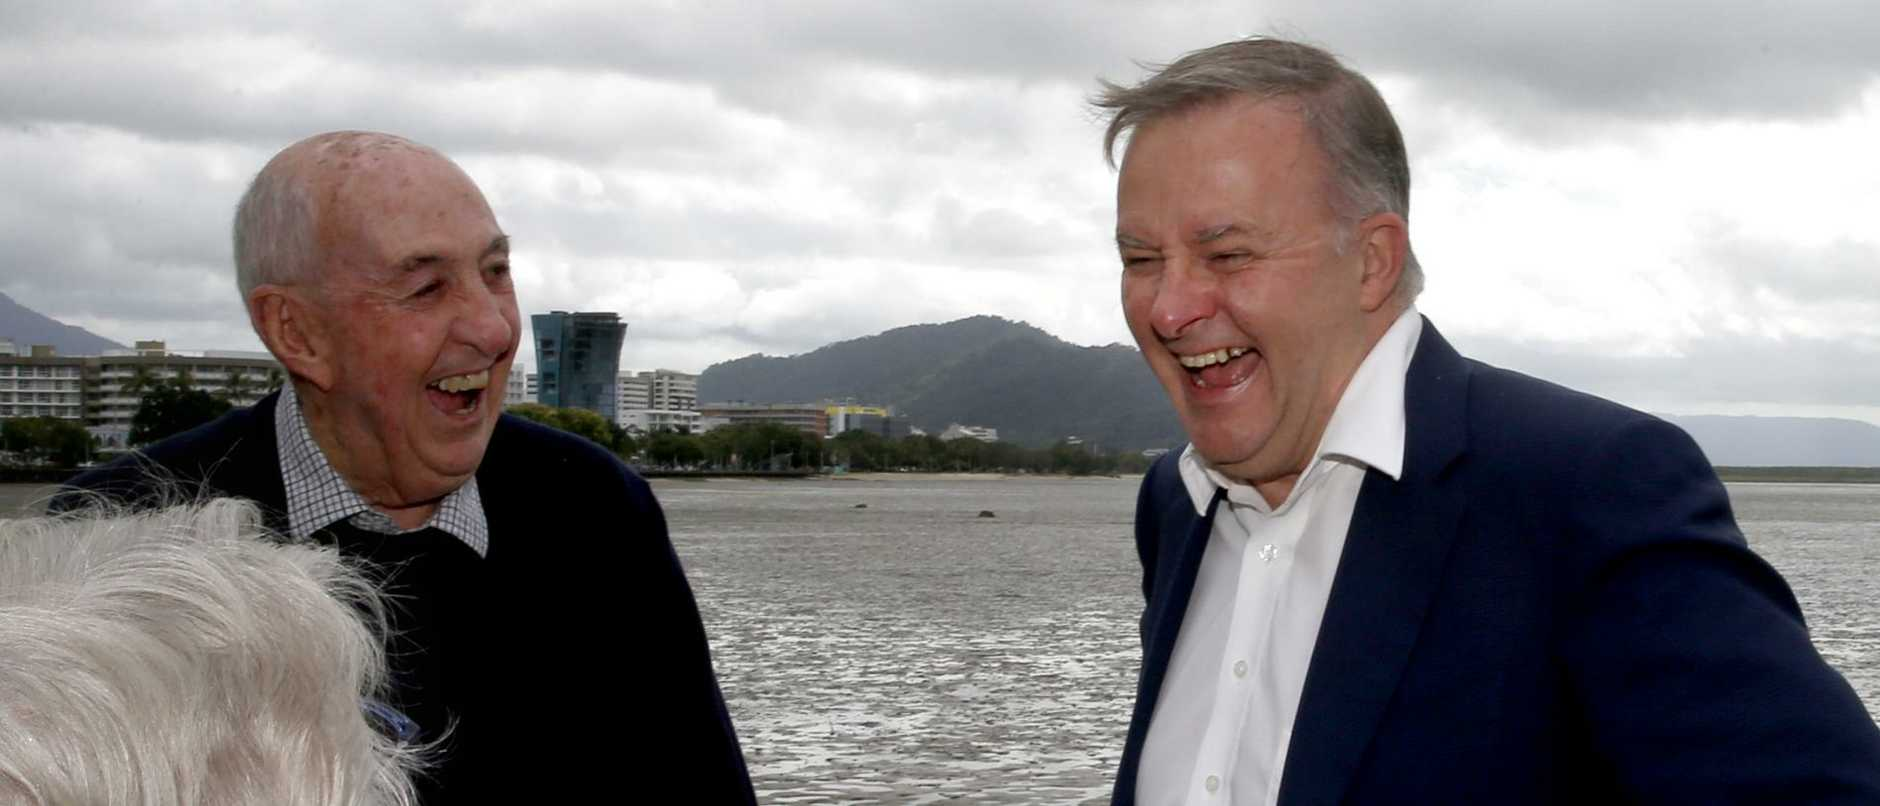 Albo made a dig at the Morrison Government for its long-distance promises to build major infrastructure.